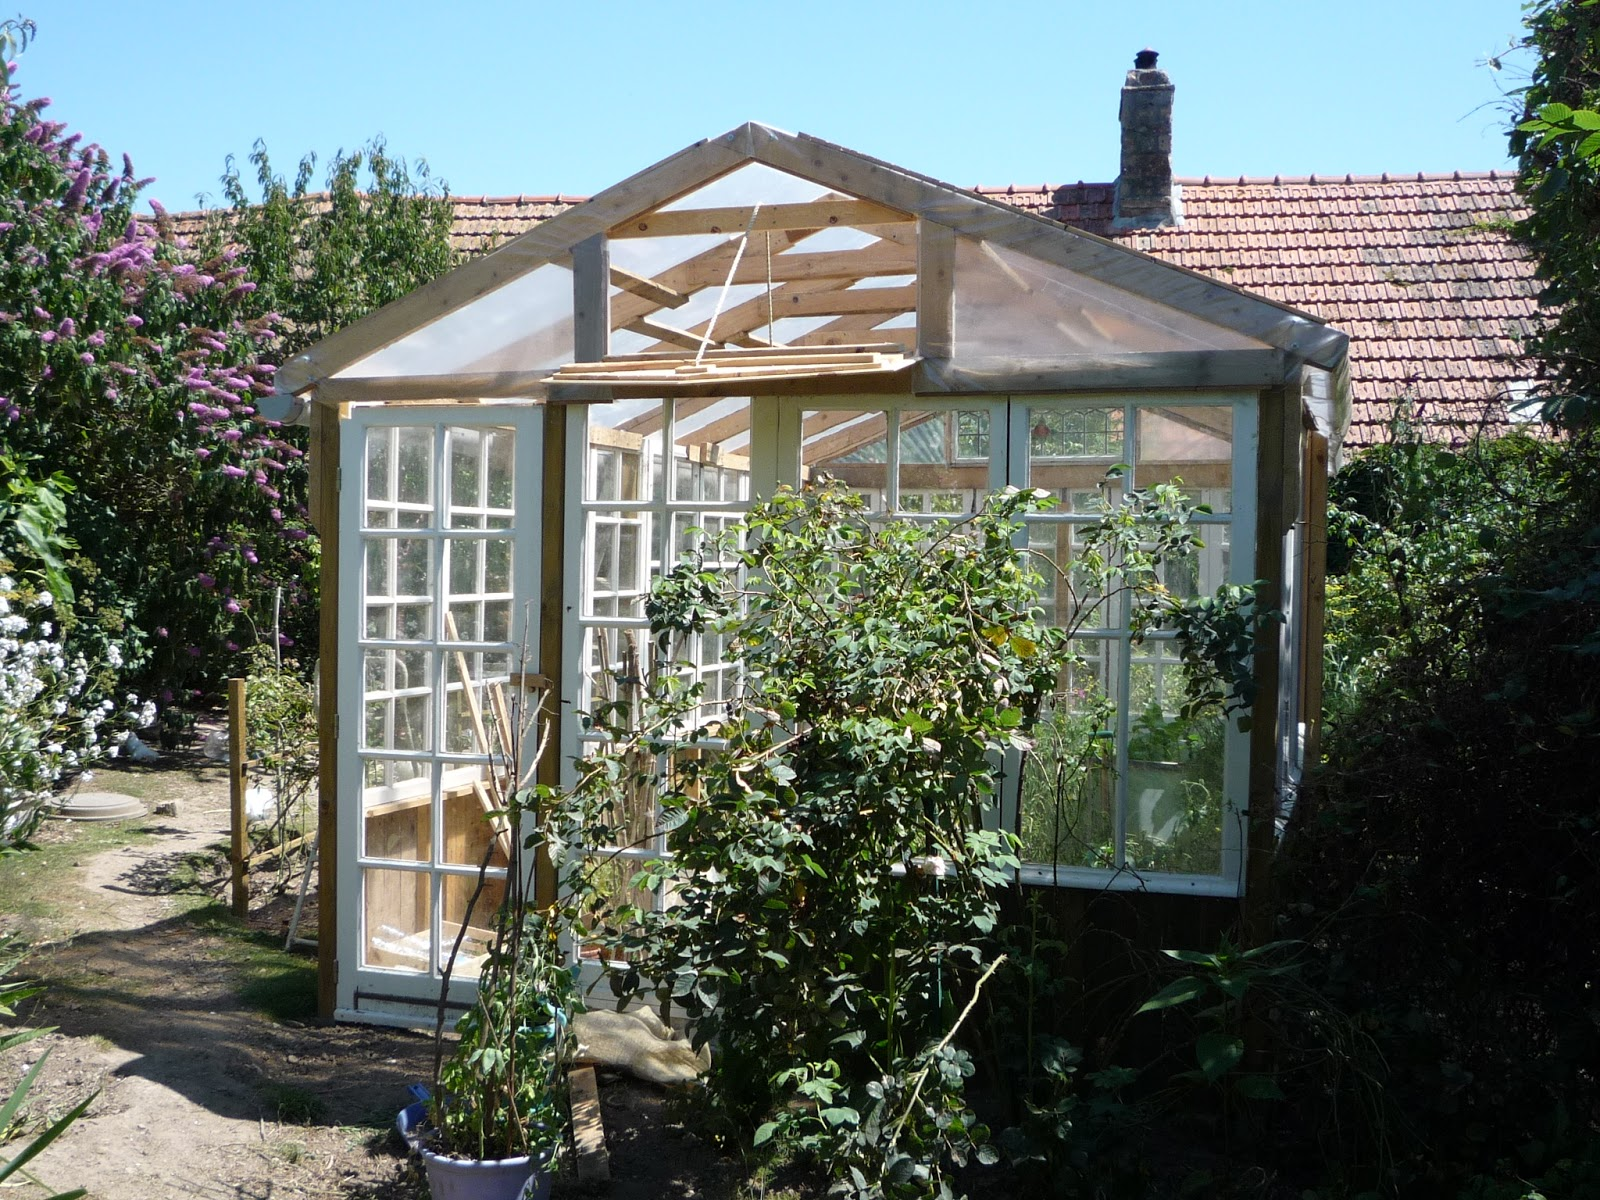 Greenhouse made from recuperated glass windows